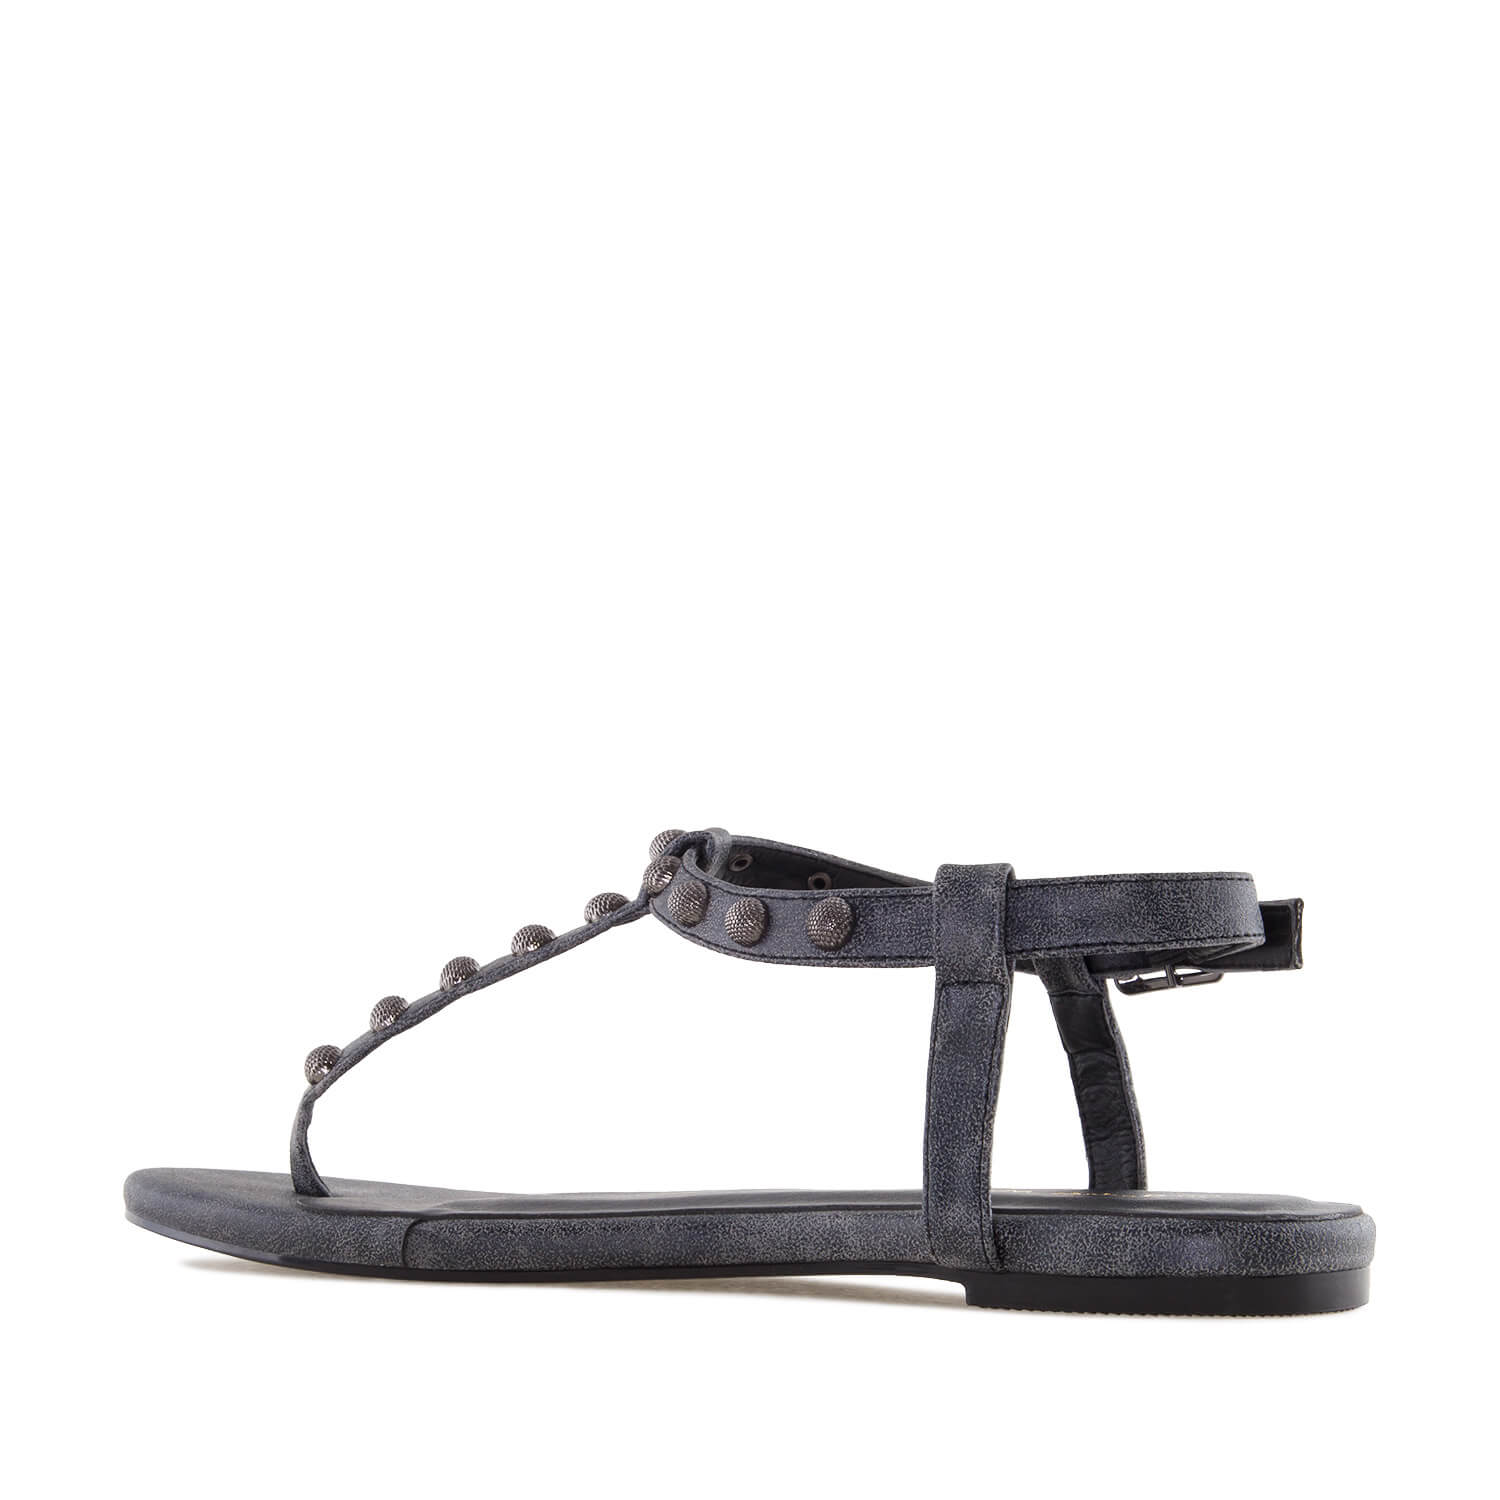 Grey Shiny-Patent T-Bar Tack Flat Sandals